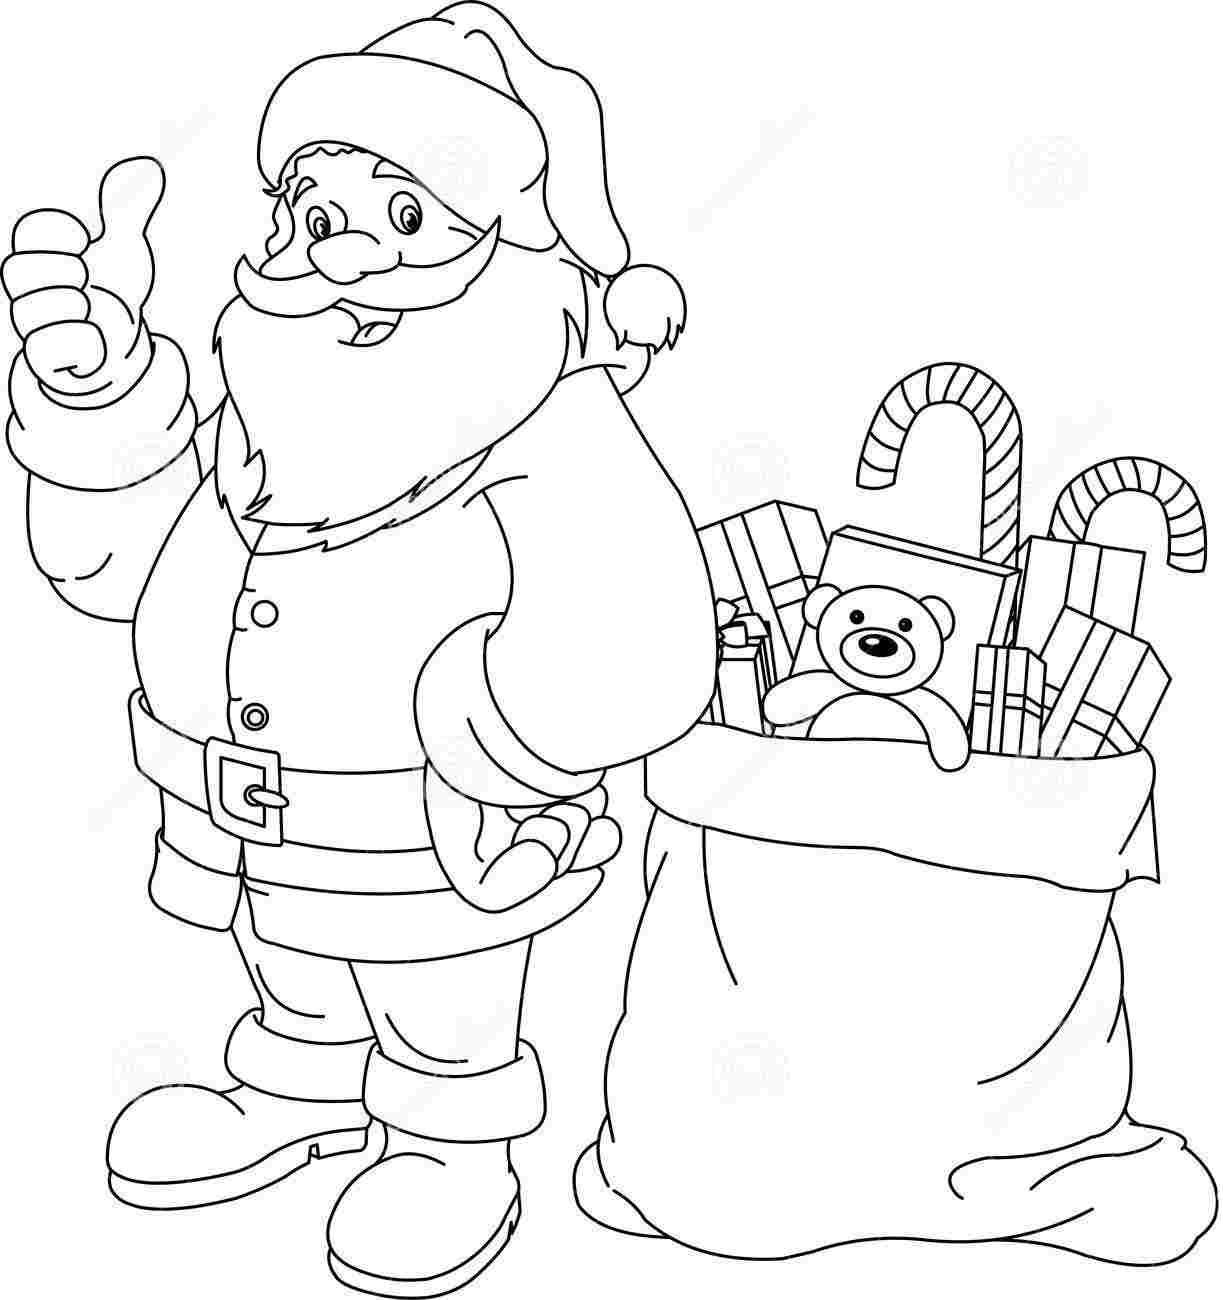 Free Coloring Pages Santa Claus - Coloring Home